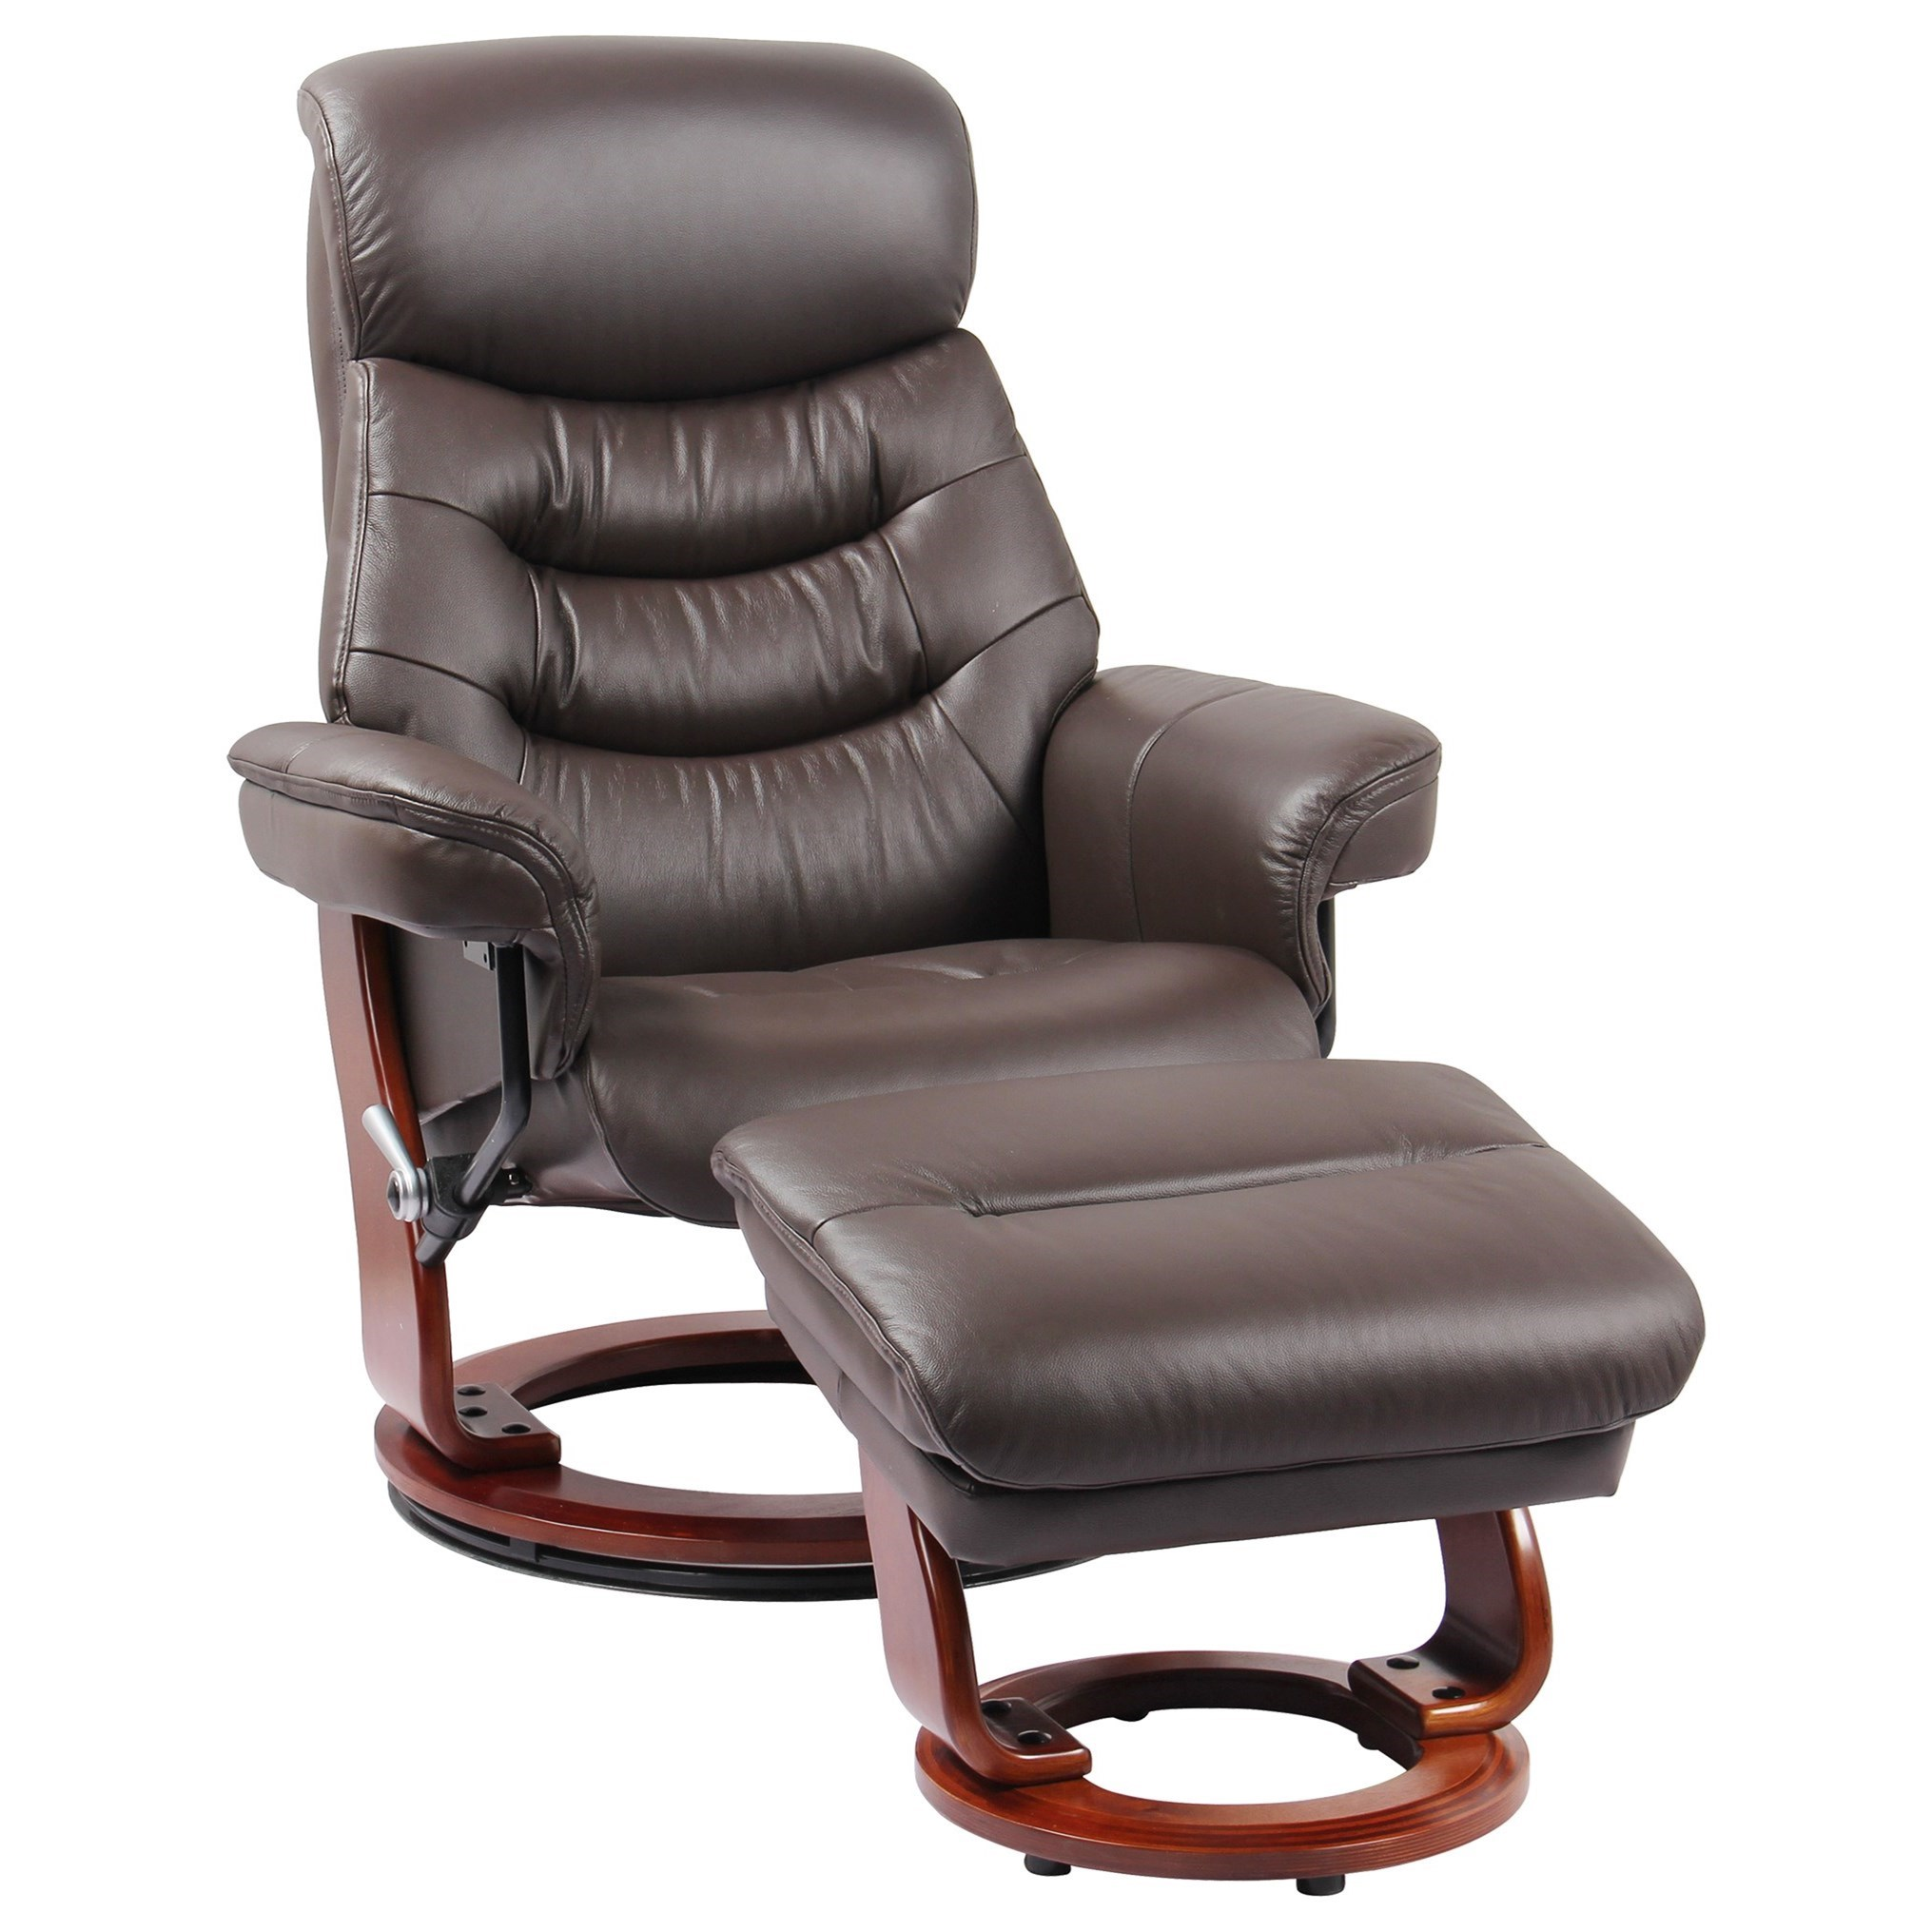 Benchmaster Happy Reclining Chair And Ottoman And